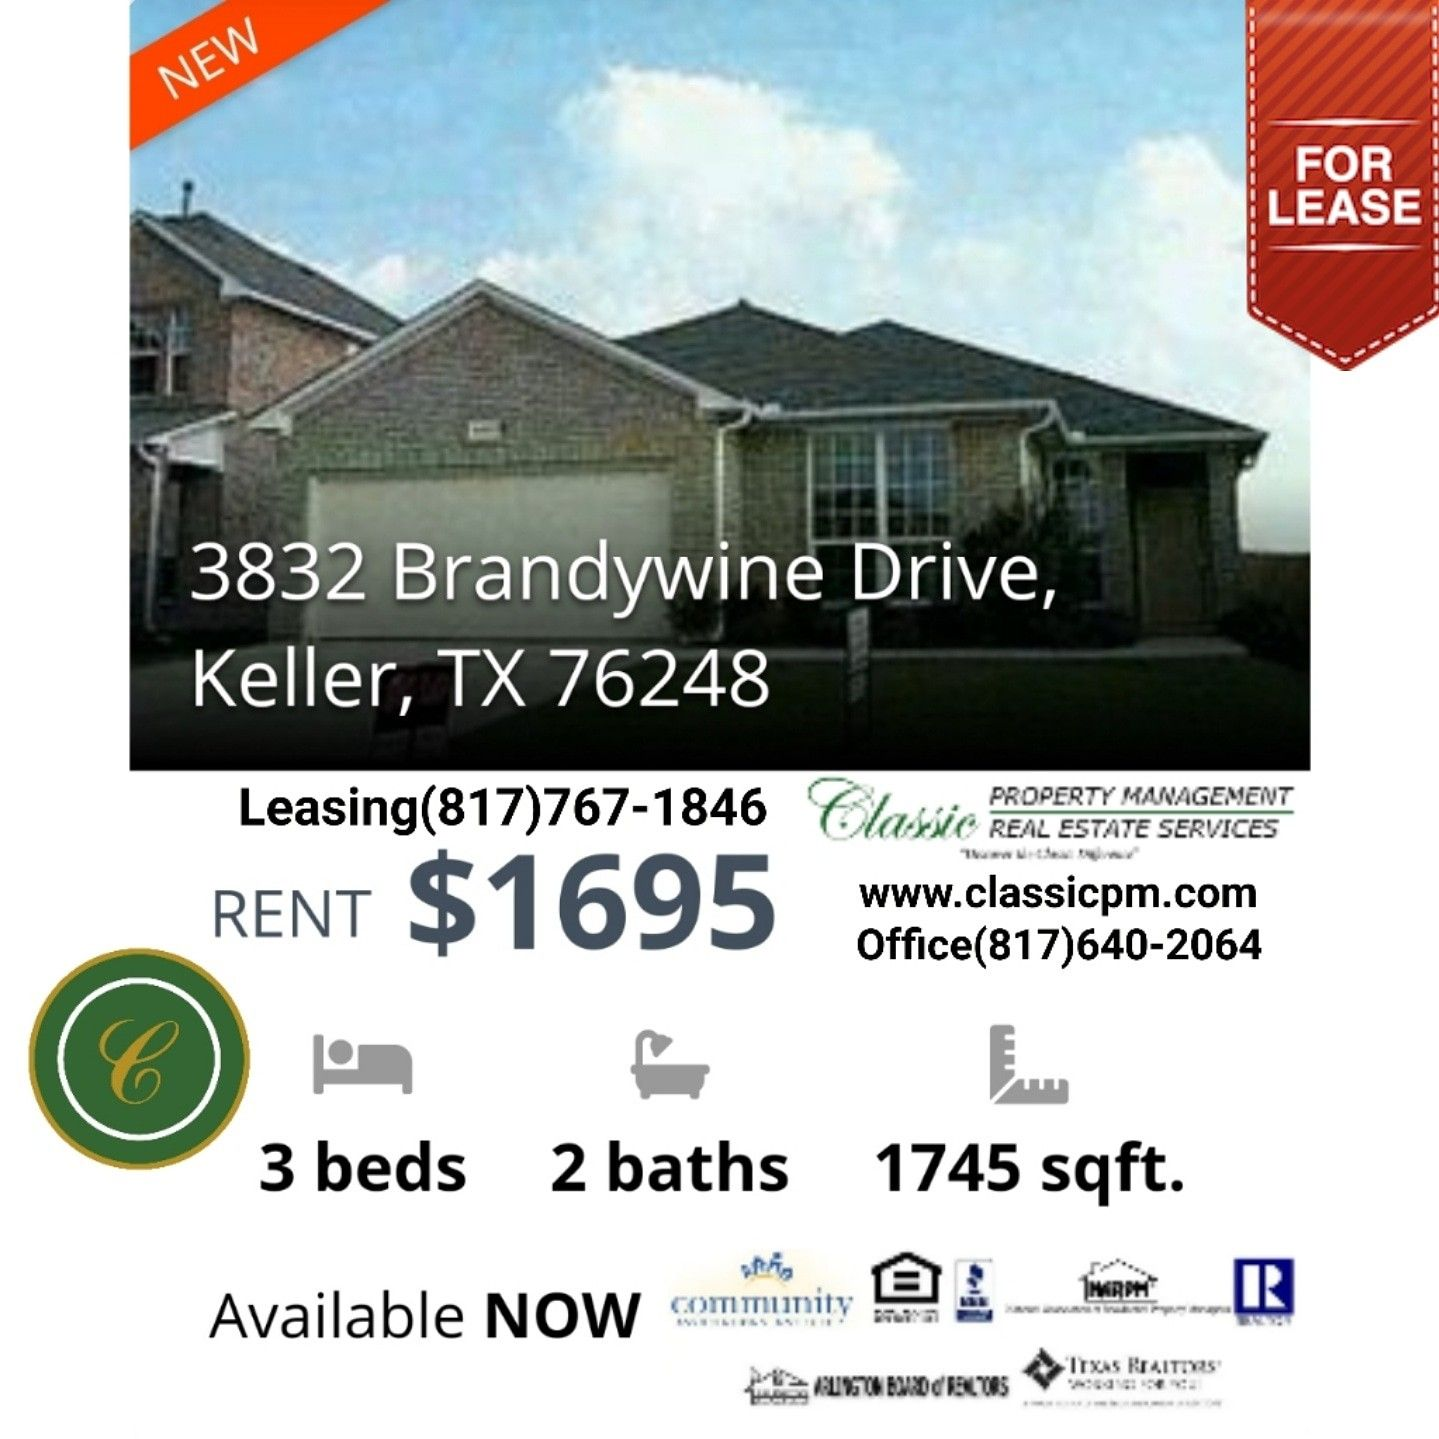 Beautiful 3 Bedroom 3 Bath Houseforrent In Keller Texas Real Estate Services Property Management Texas Real Estate